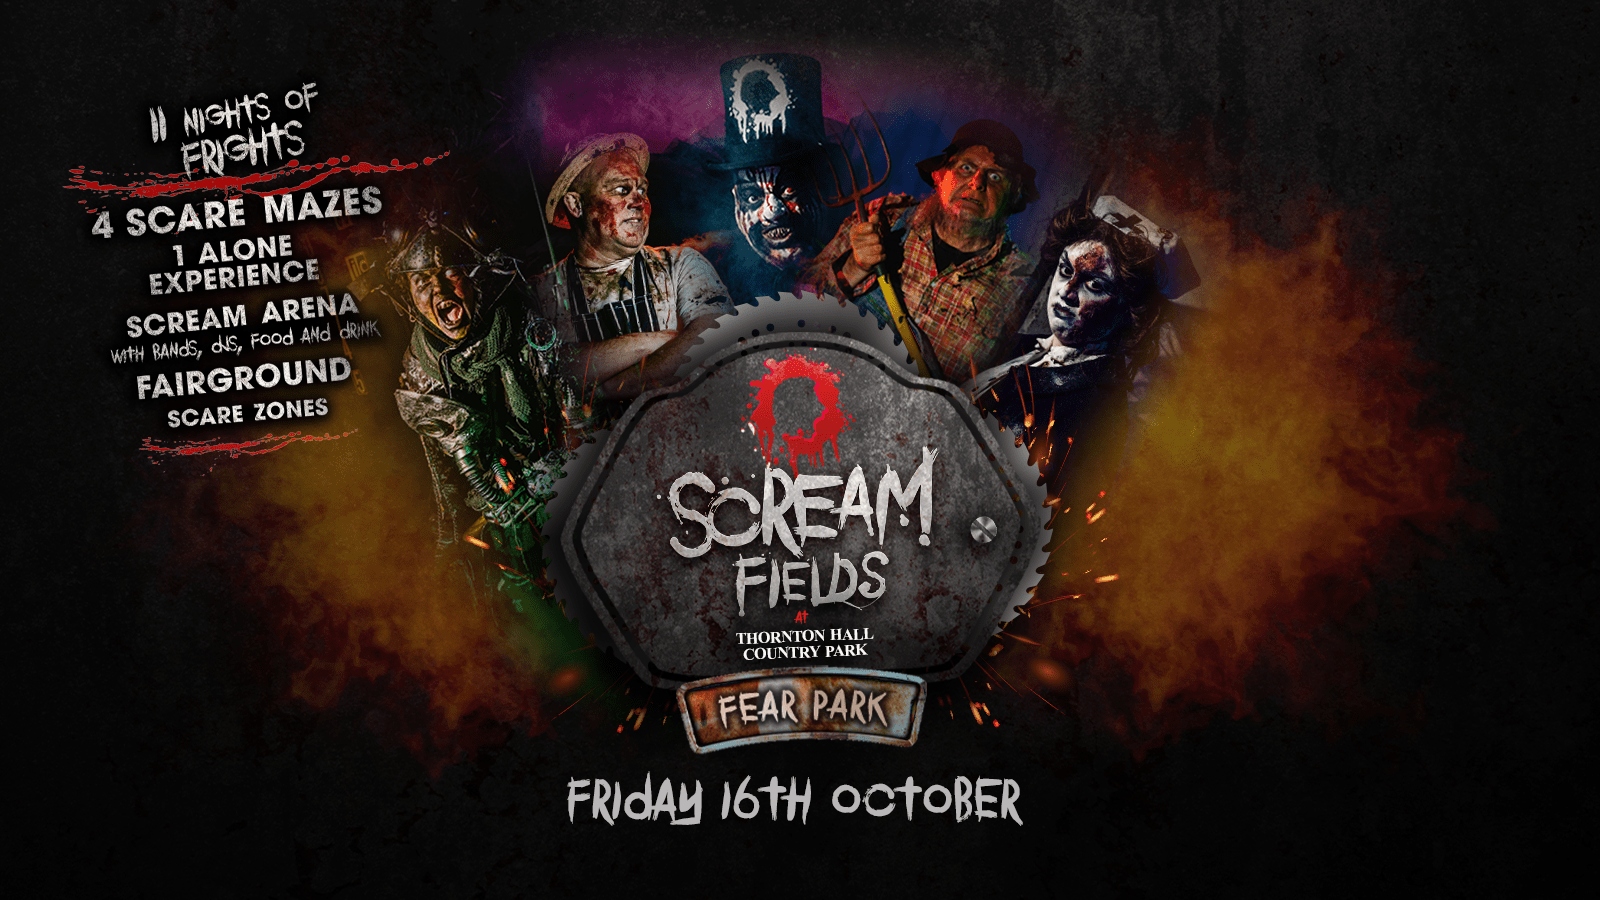 6.00PM – Screamfields: Friday 16th October 2020